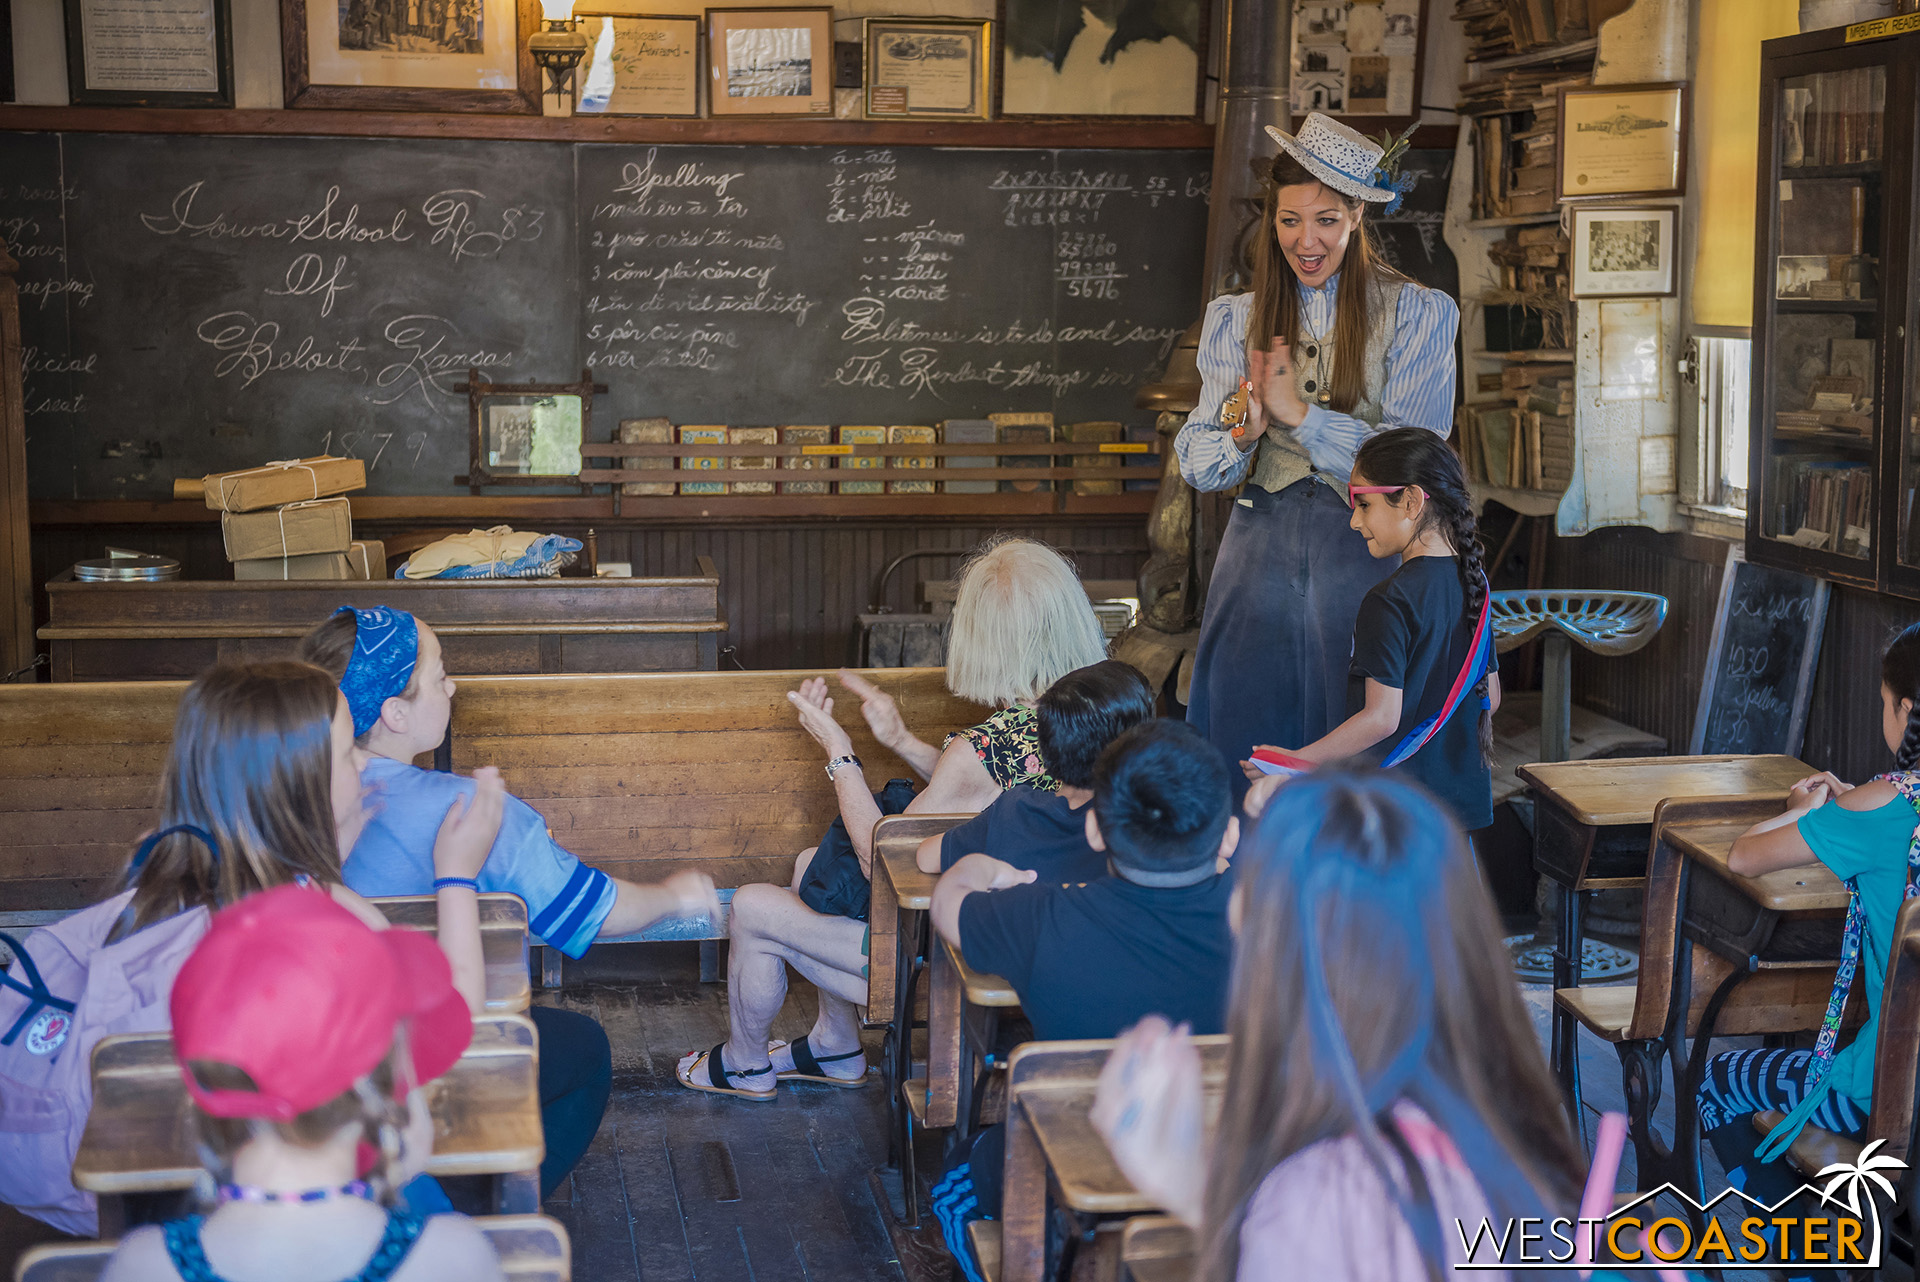 The School House is a common place of guest interaction.